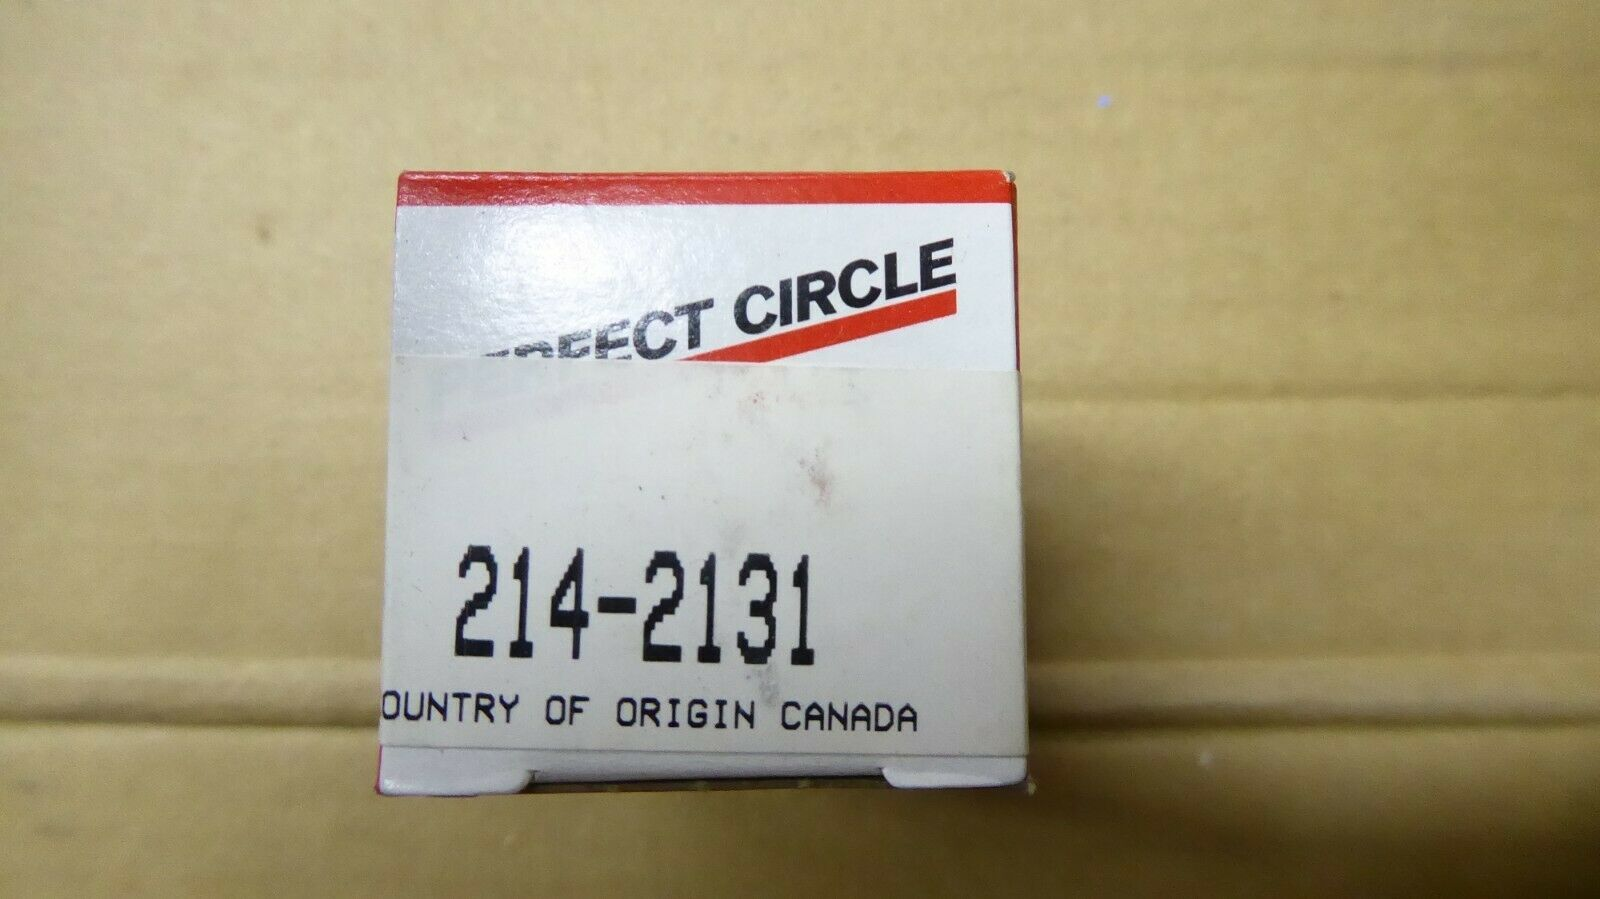 (7) Perfect Circle Engine Bearings 214-2131 New